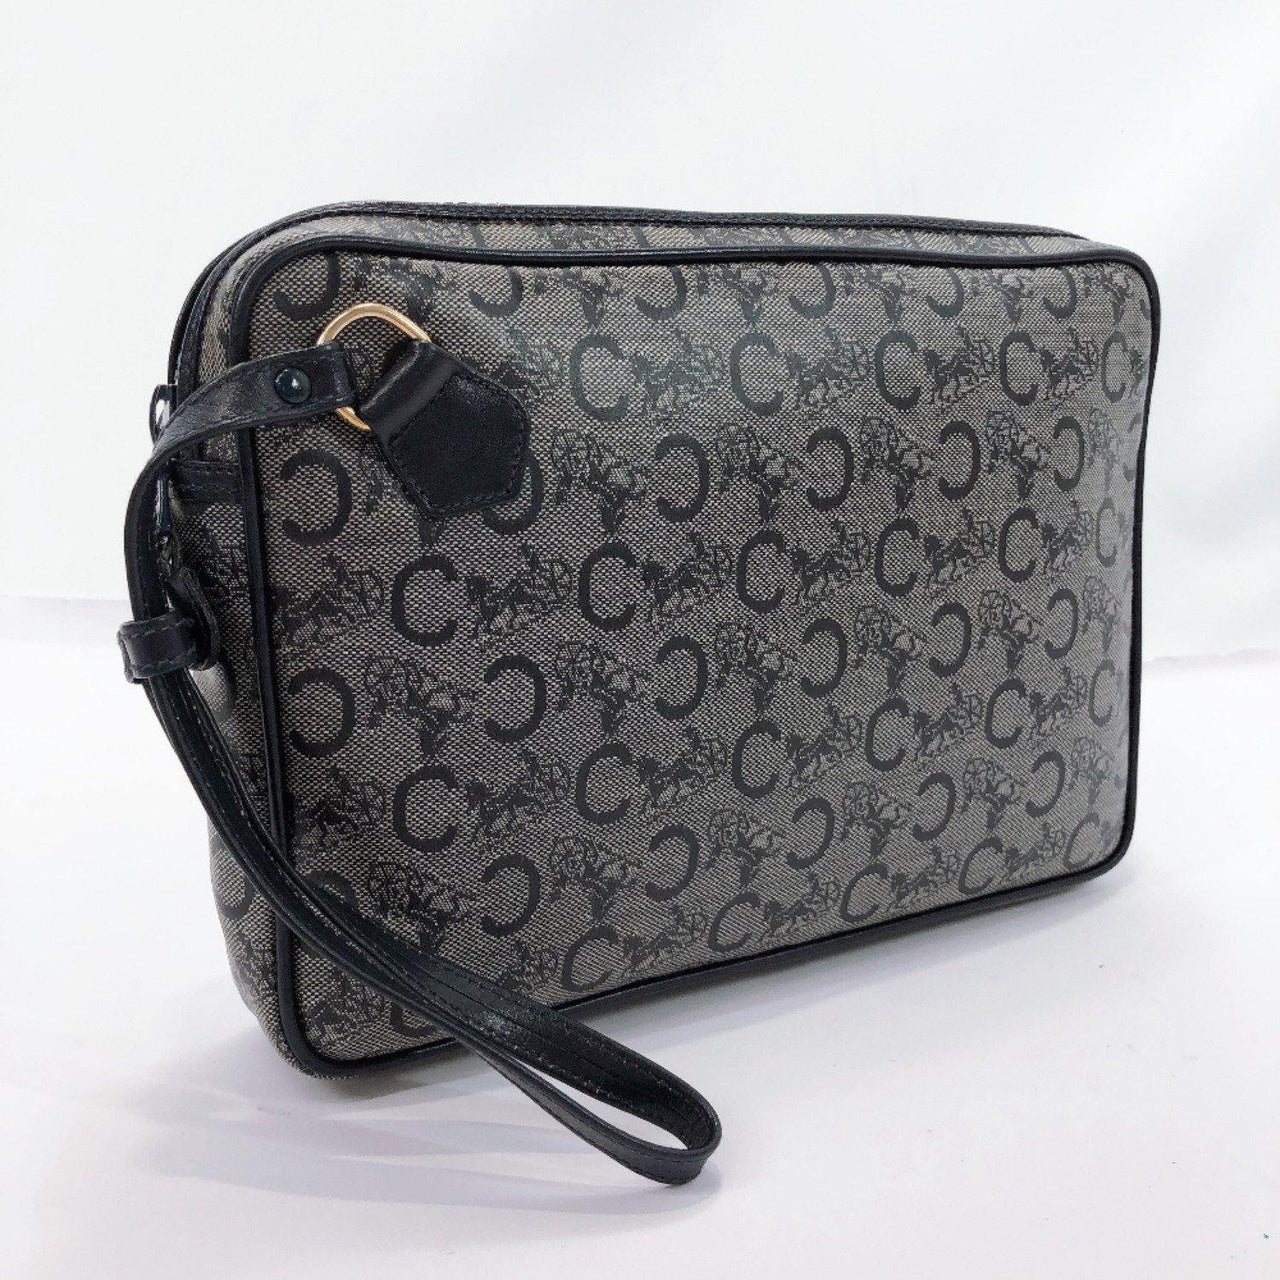 CELINE Clutch bag DIFFUSION PVC/leather Navy mens Used - JP-BRANDS.com